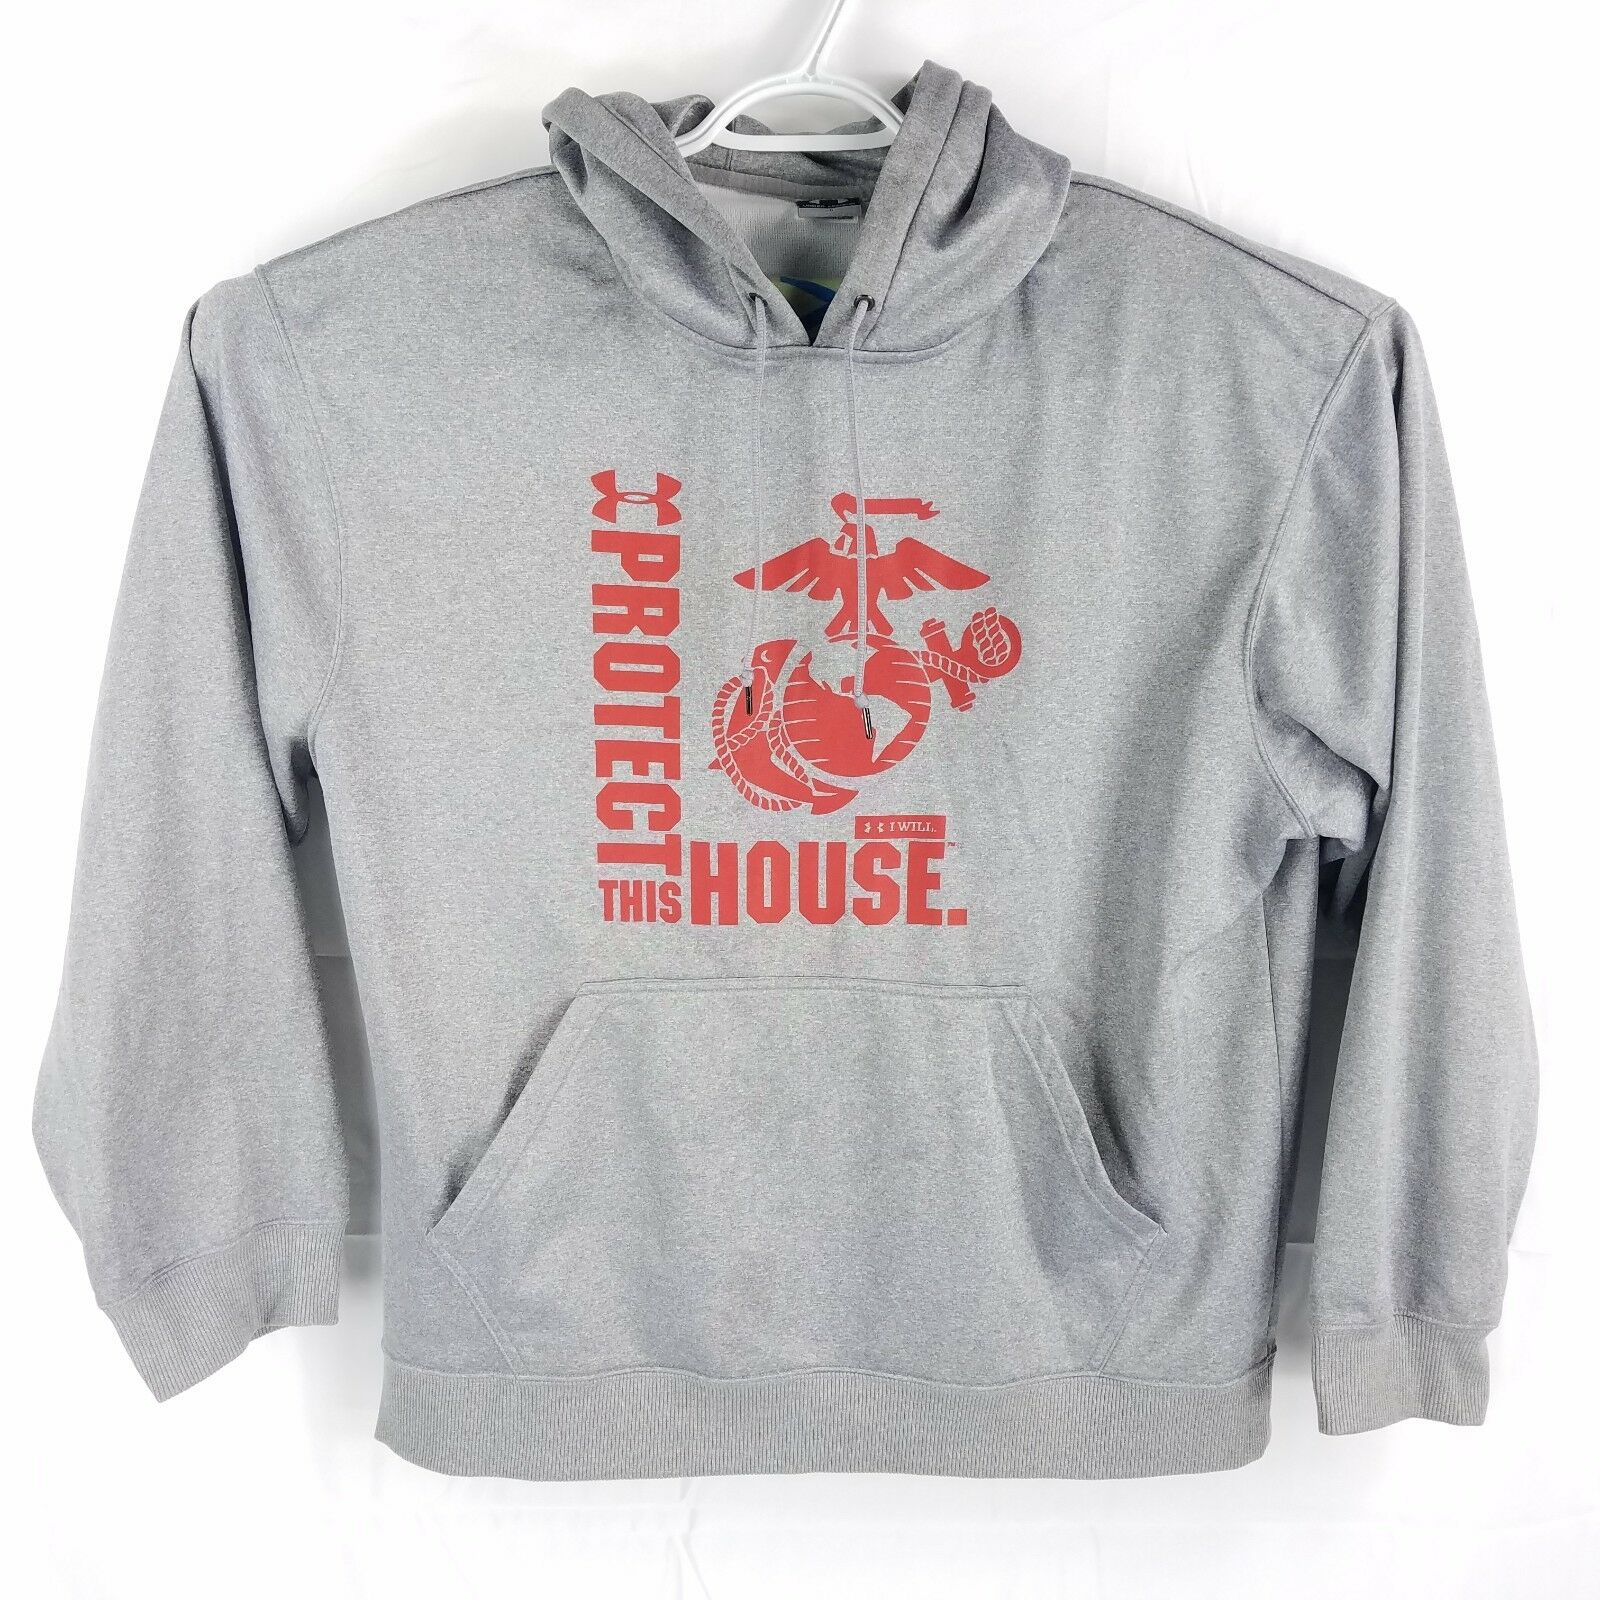 Under Armour 'Protect This House' grau Polyester Hoodie Sweatshirt,  Herren Large